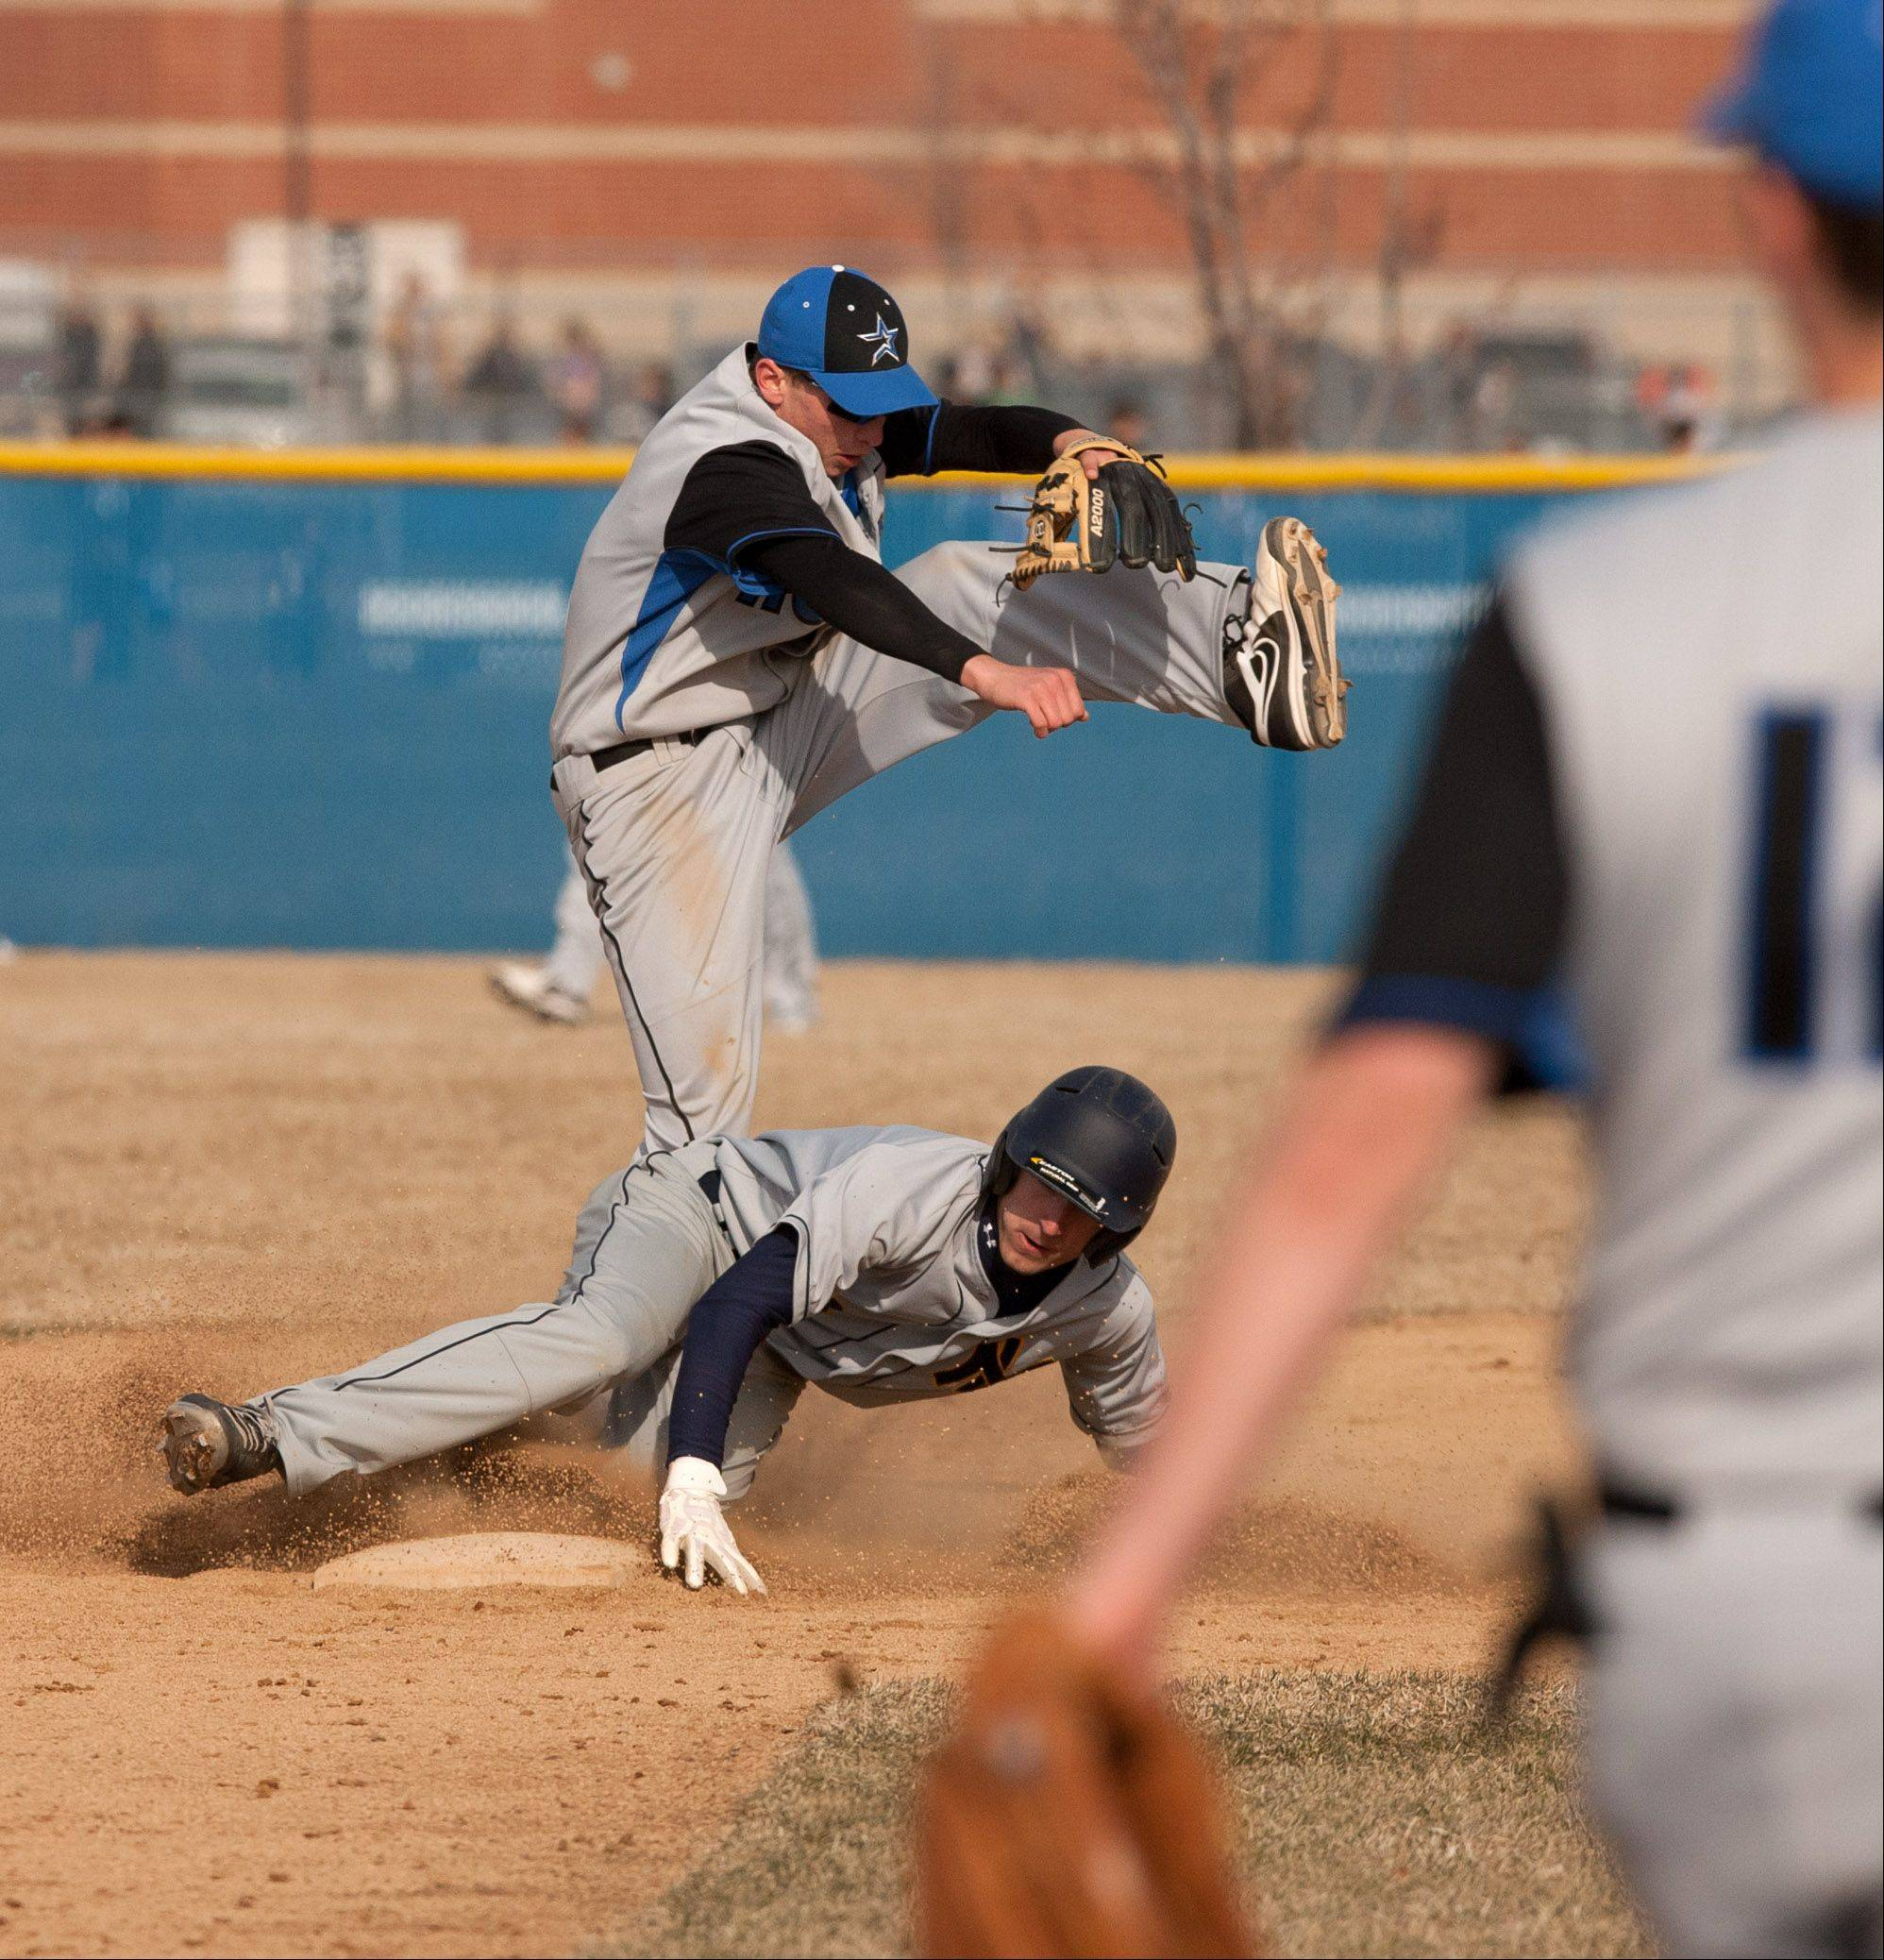 Neuqua Valley's Josh Piotrowski slides safely into second base under St. Charles North's Tim Misner, during boys baseball action in Naperville.